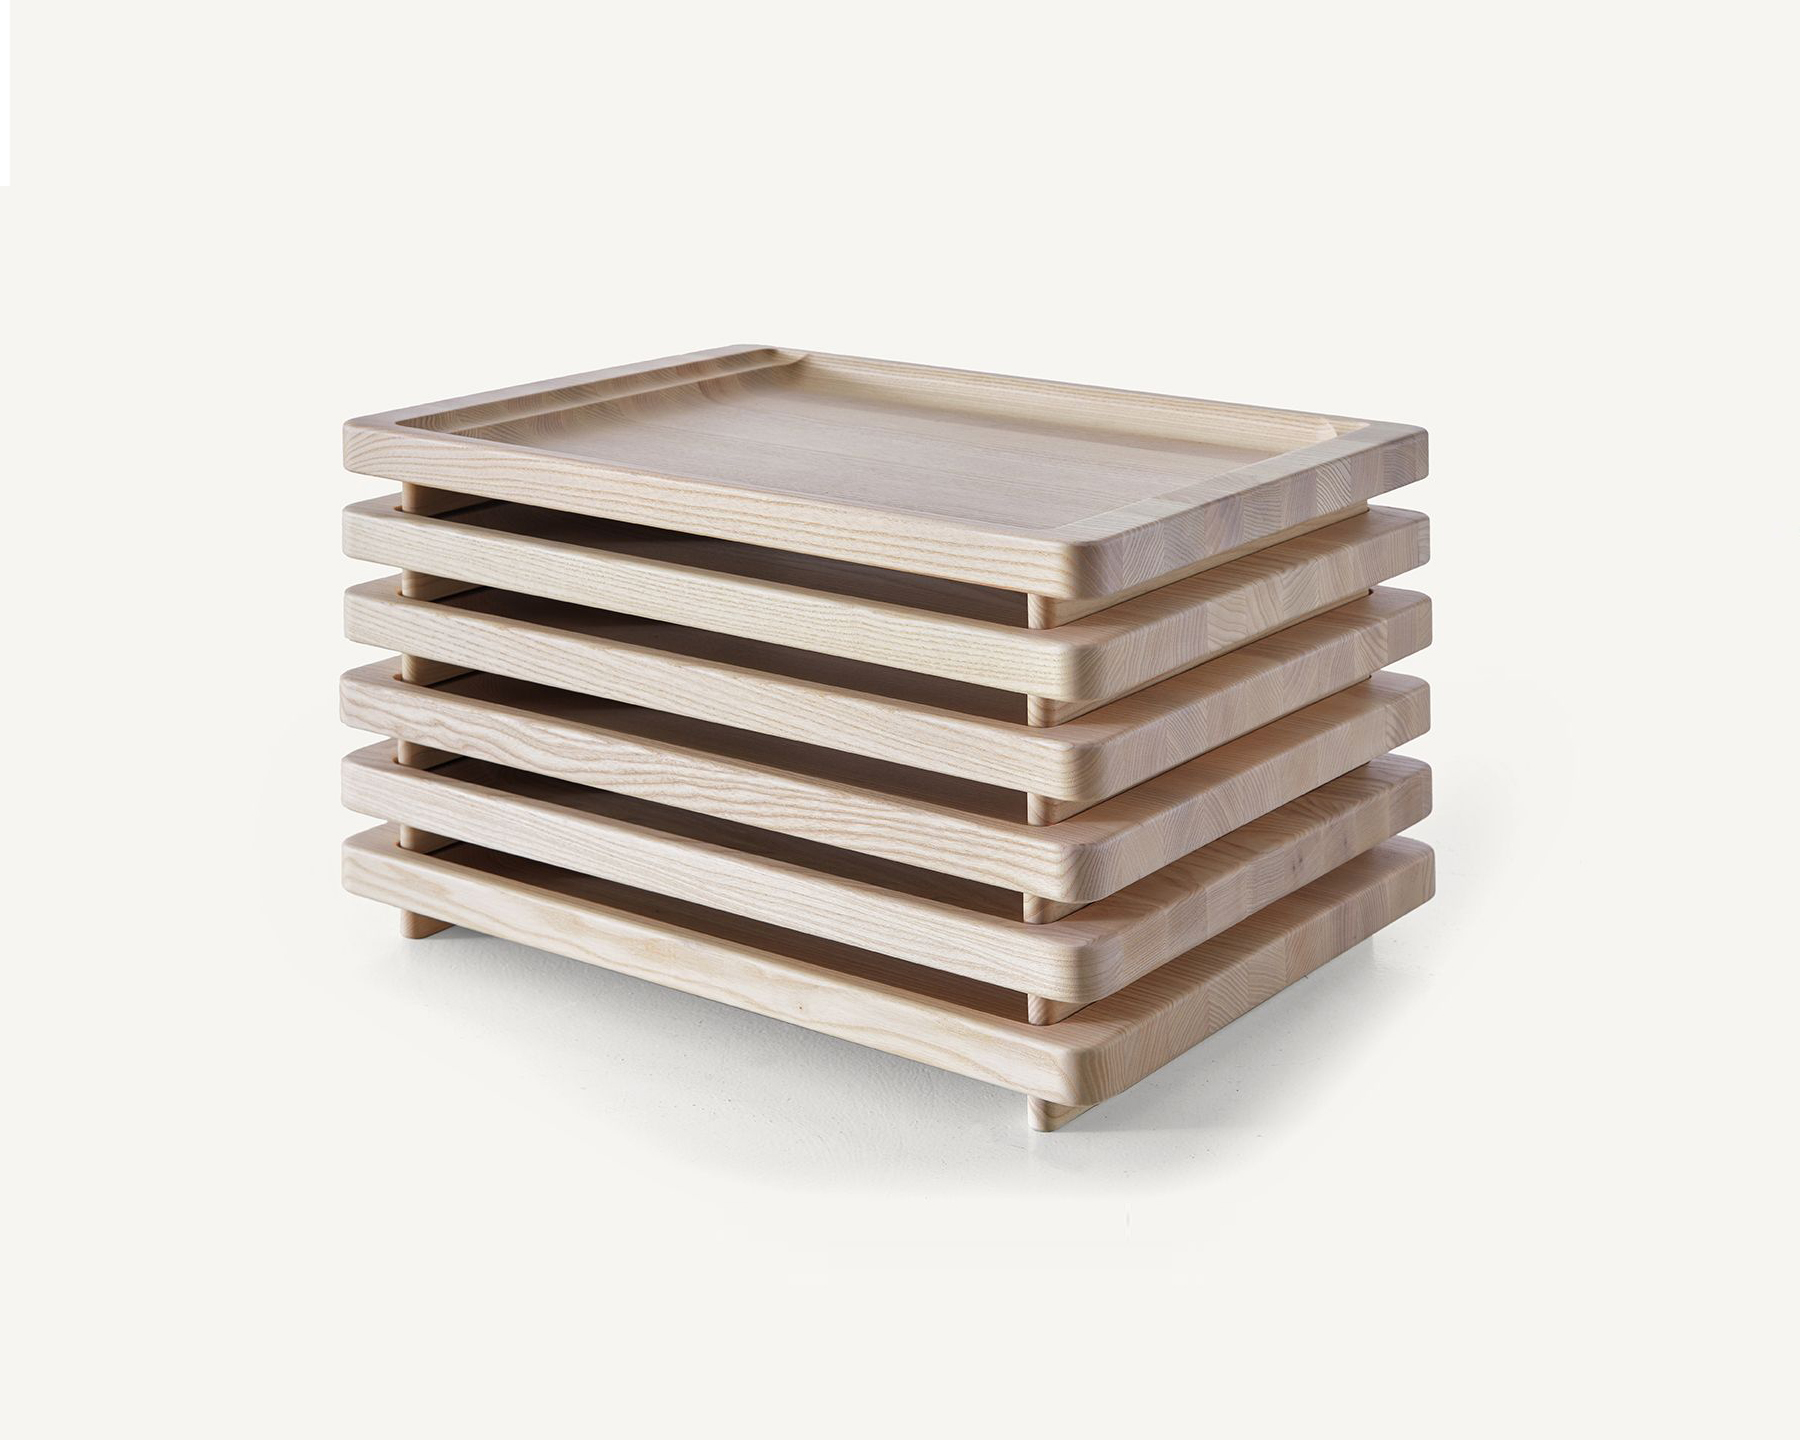 Stacking Trays by BassamFellows